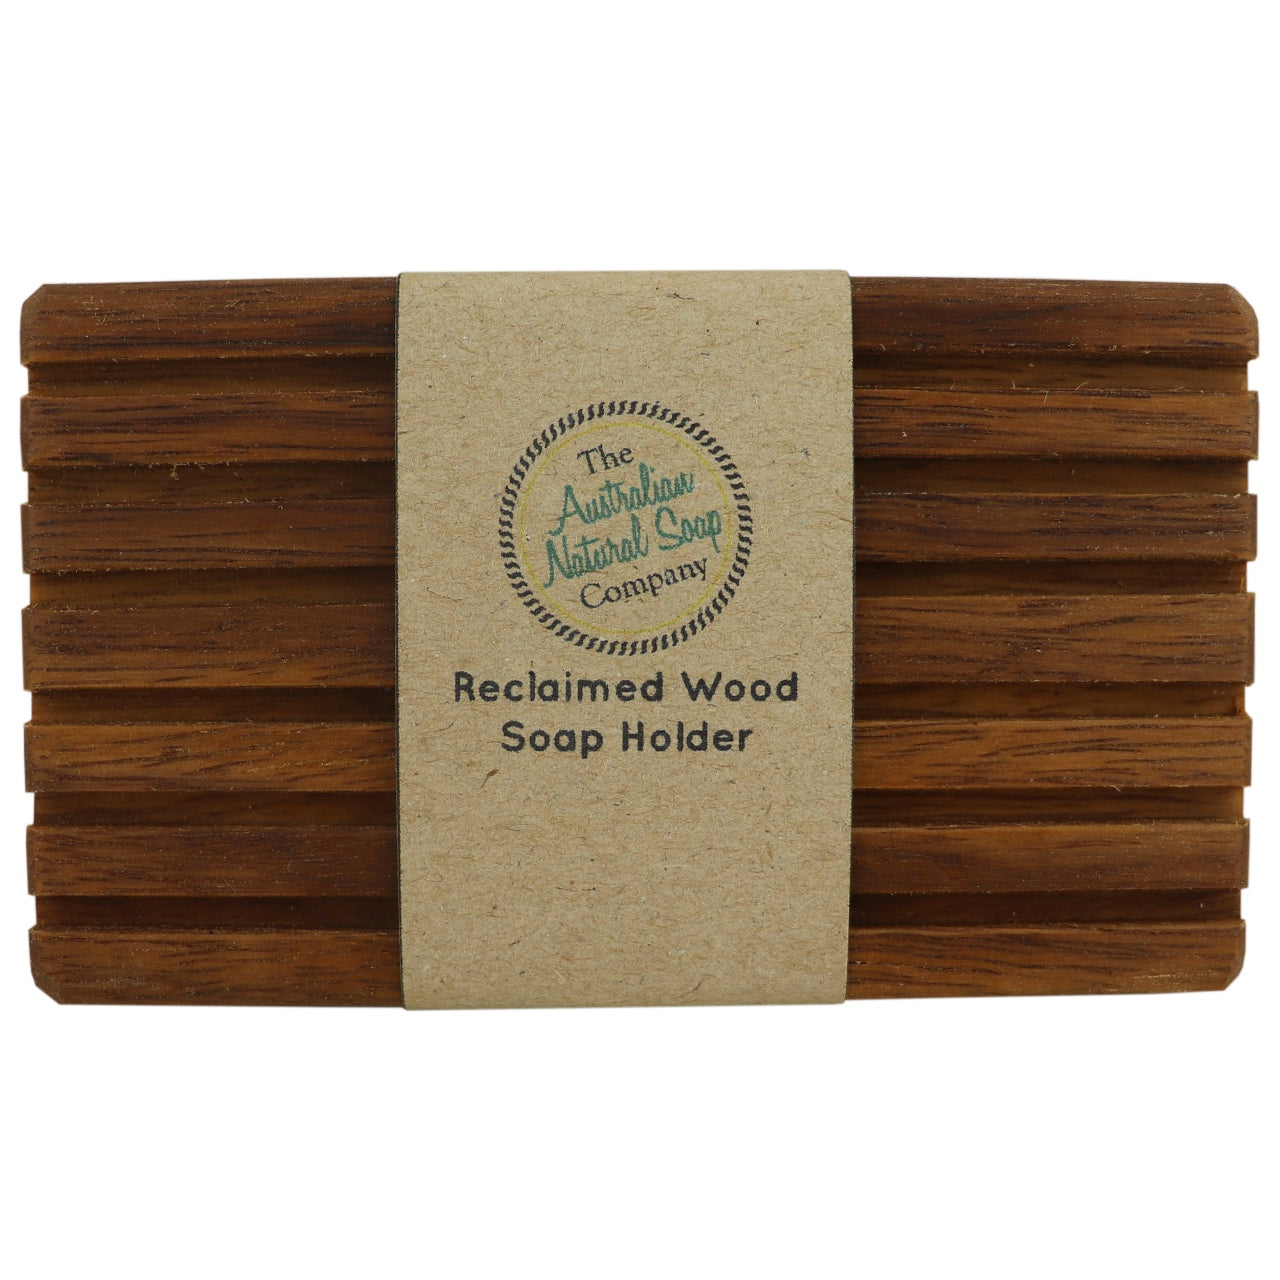 The Australian Natural Soap Company Reclaimed Wood Soap Holder